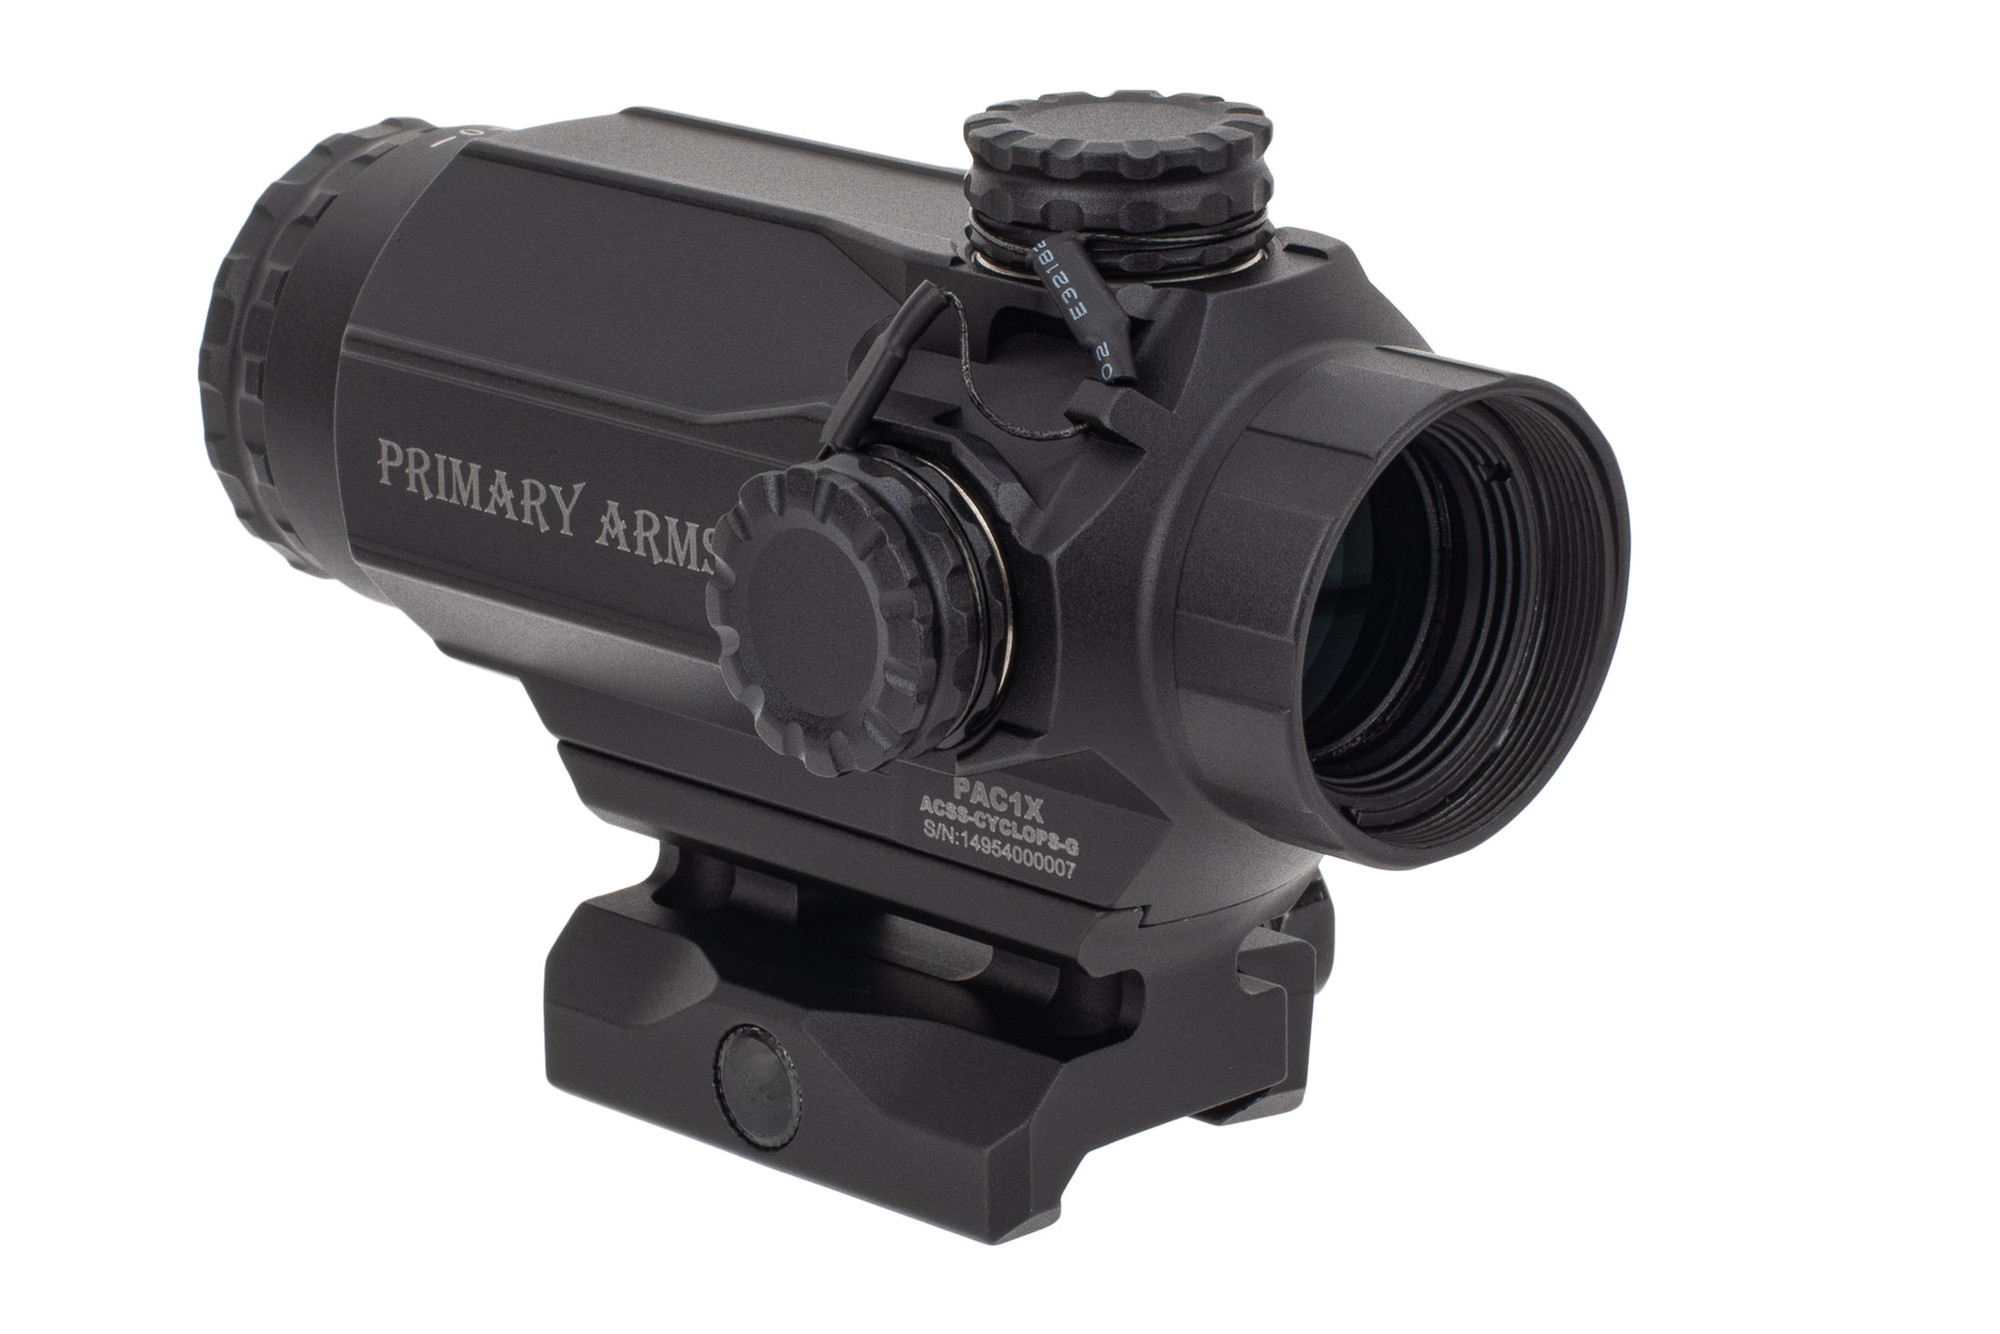 Primary Arms SLx Compact 1x20 Prism Scope - Green Illuminated ACSS-Cyclops PAC1X-ACSS-CYCLOPS-G